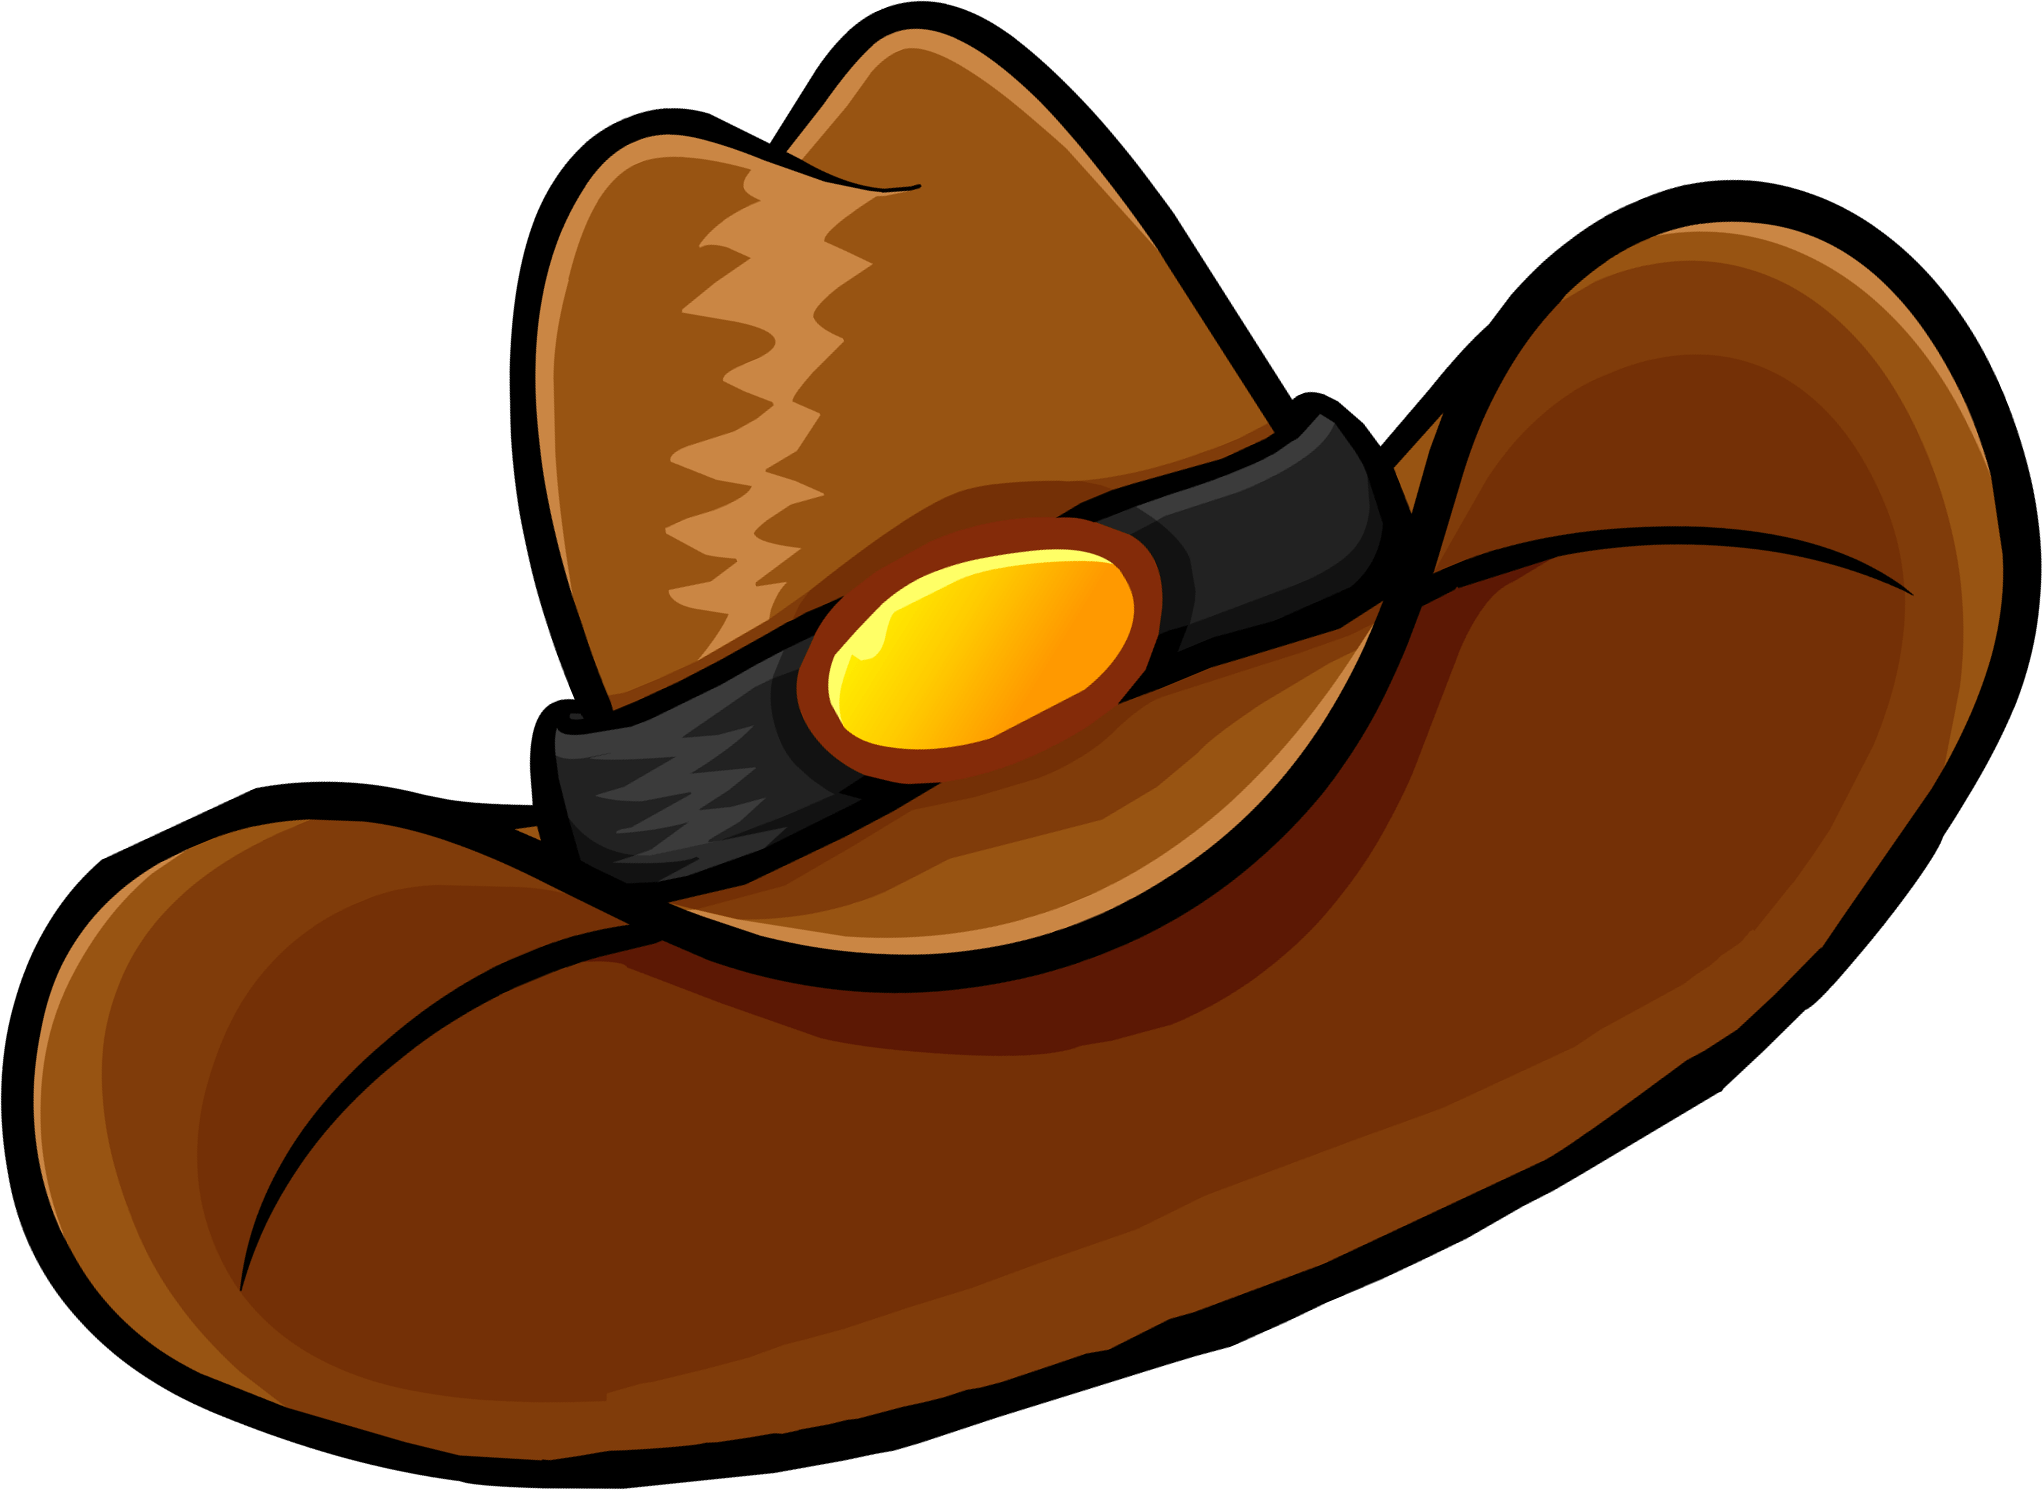 Paper Cowboy Hat Template. how to make a felt baby cowgirl or ... clip art freeuse stock